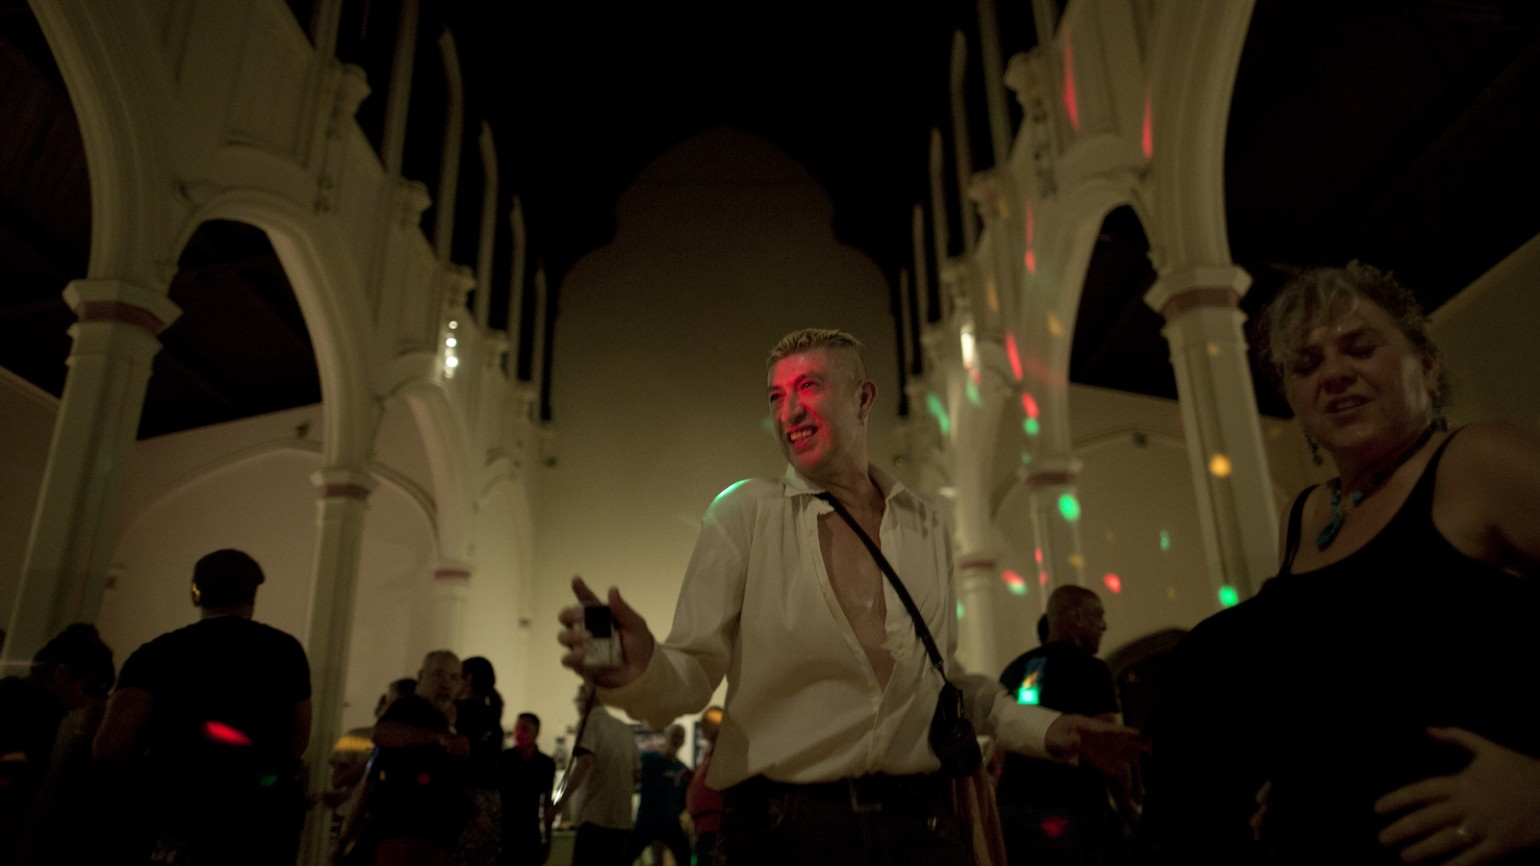 """Jesus Guillen, a long-term AIDS survivor, dances during Shanti's Honoring Our Experience """"Revival! 2,"""" a community-building dance event hosted by long-term AIDS survivors, at the Episcopal Church of Saint John the Evangelist in San Francisco on Friday, October 2, 2015. (Photo by Tim Hussin)"""